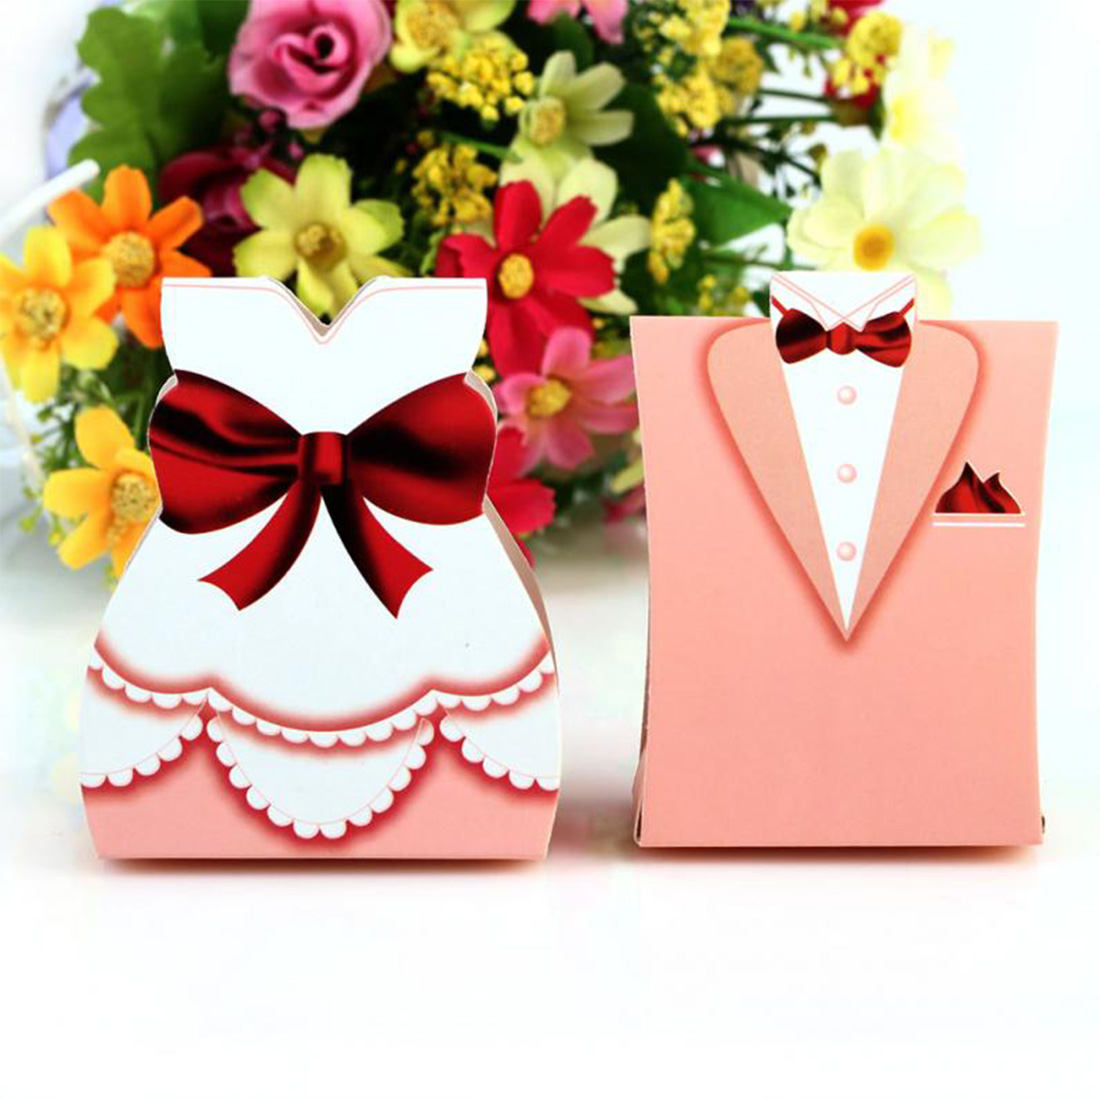 50pcs/lots Bride And Groom Dresses Wedding Candy Box Gifts Favor Box Wedding Bonbonniere DIY Event Party Supplies